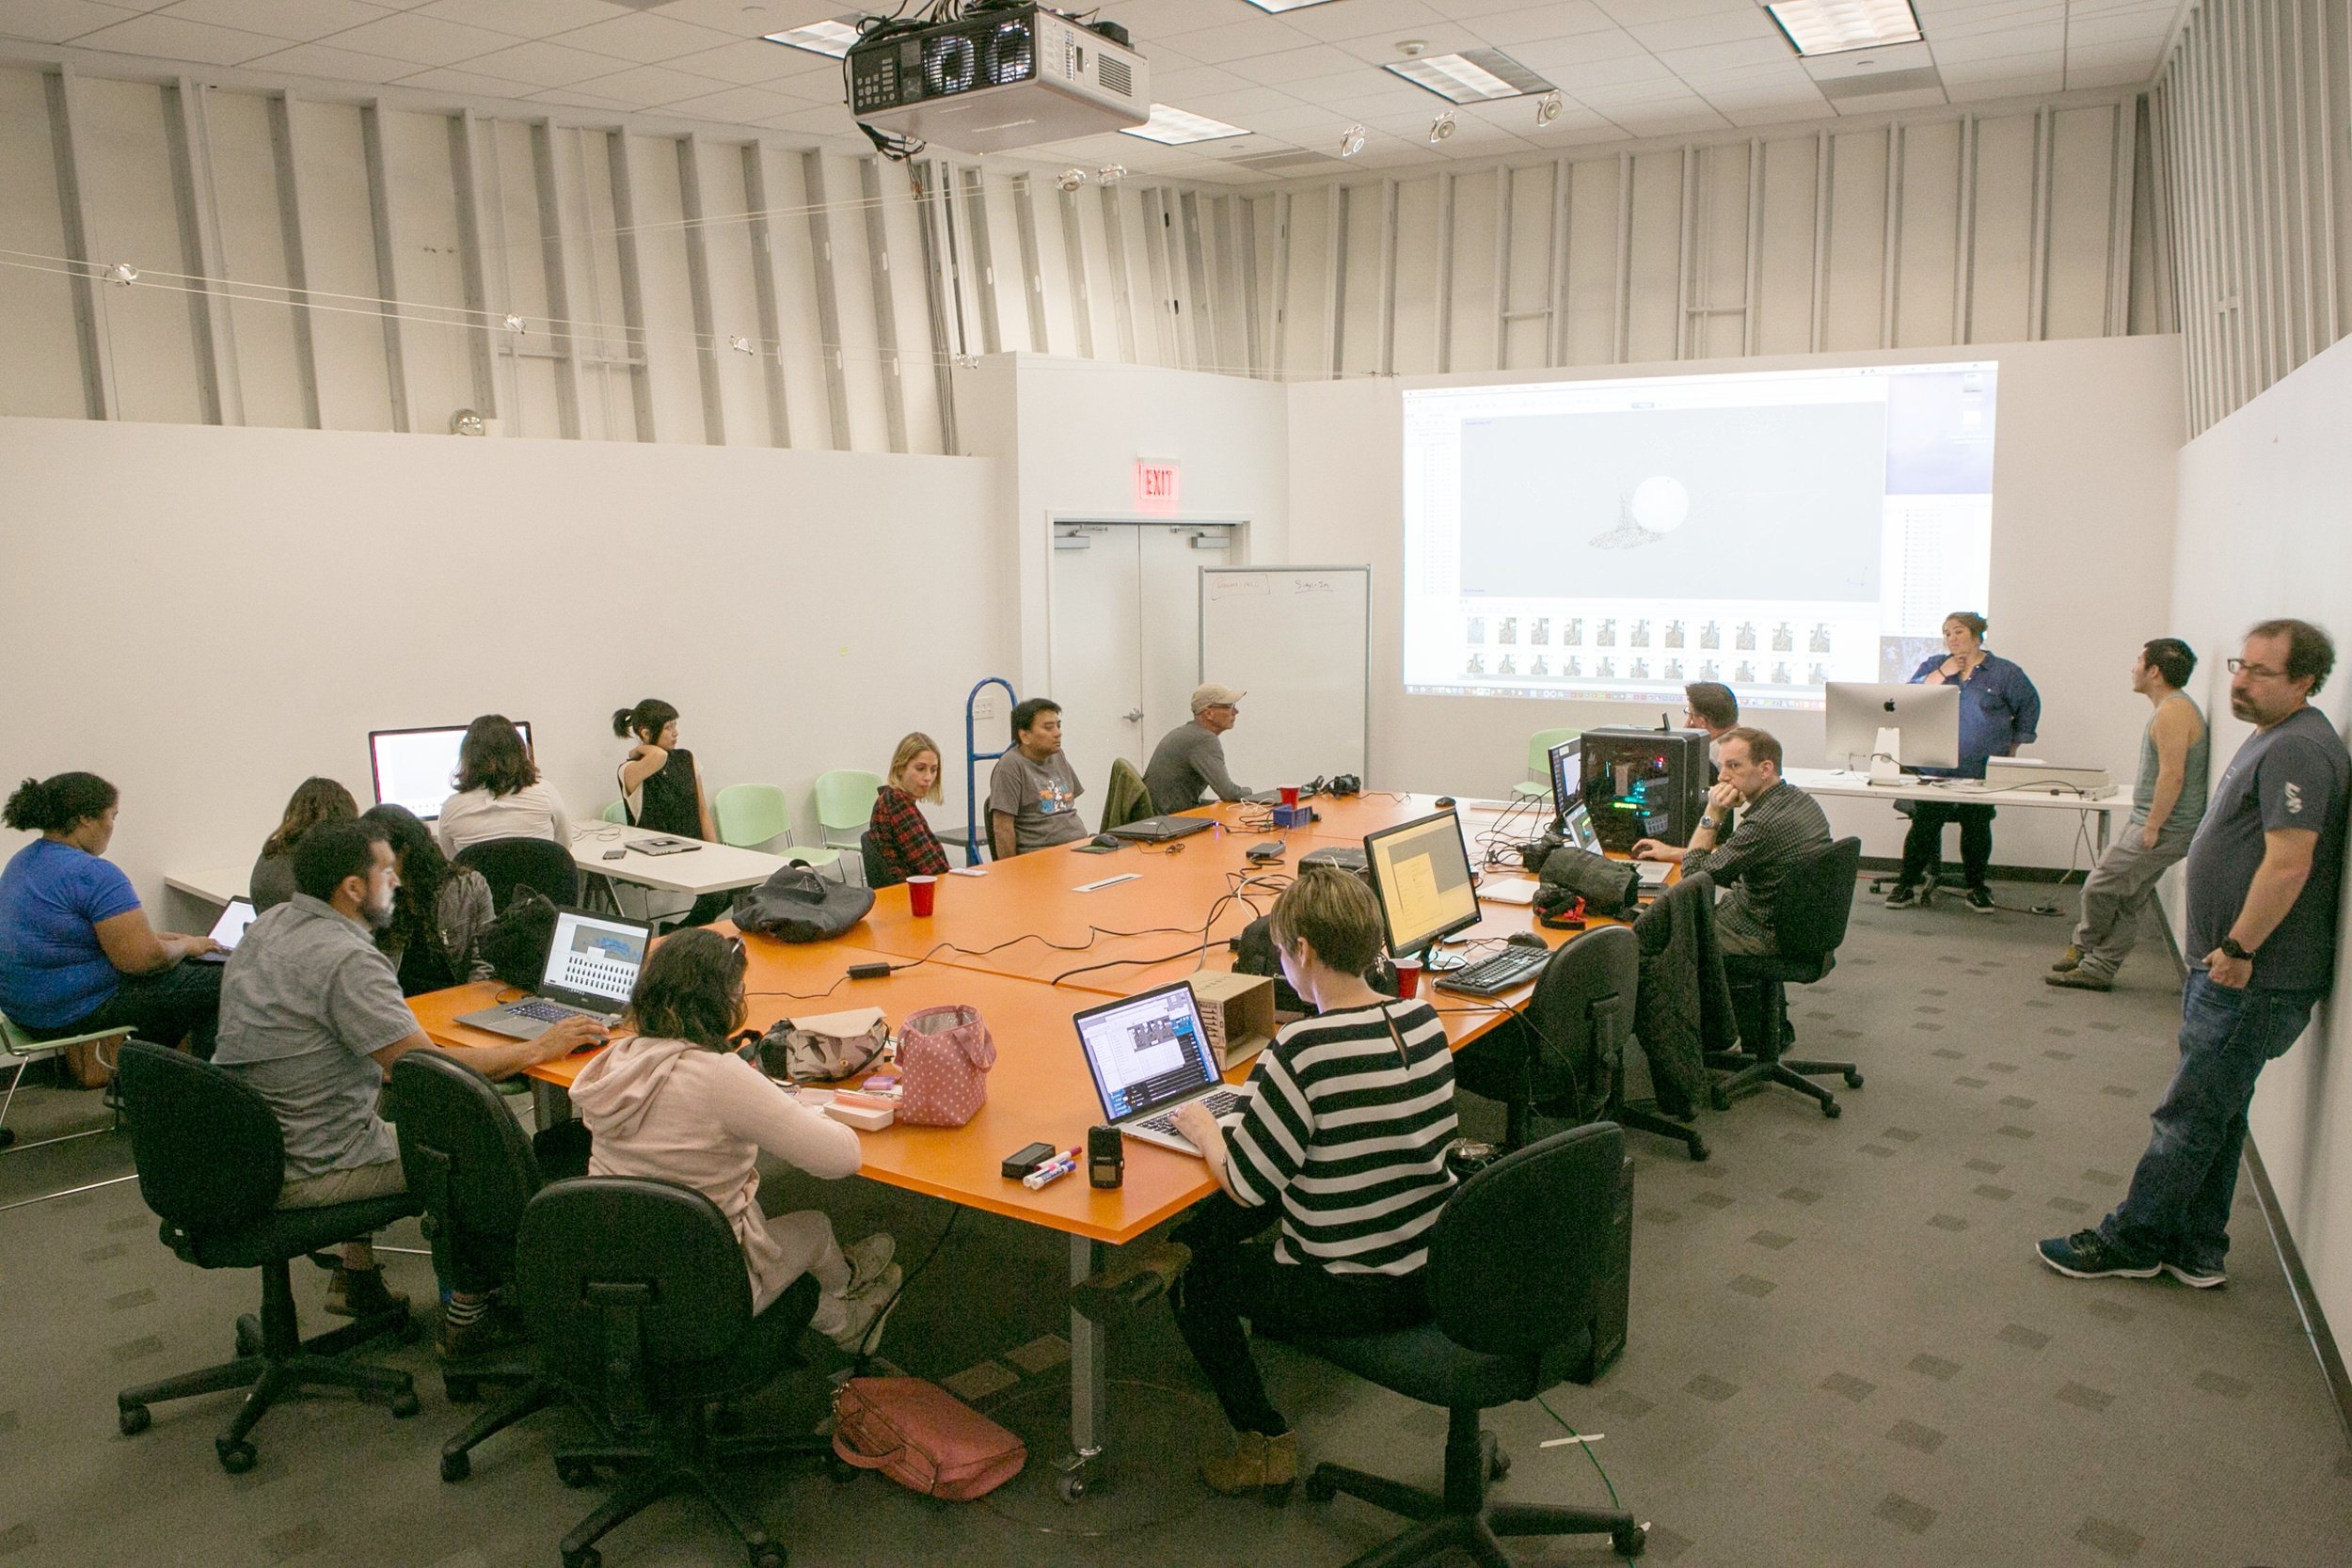 AI research community member Tricia Stokes teaches a Photogrammetry workshop.